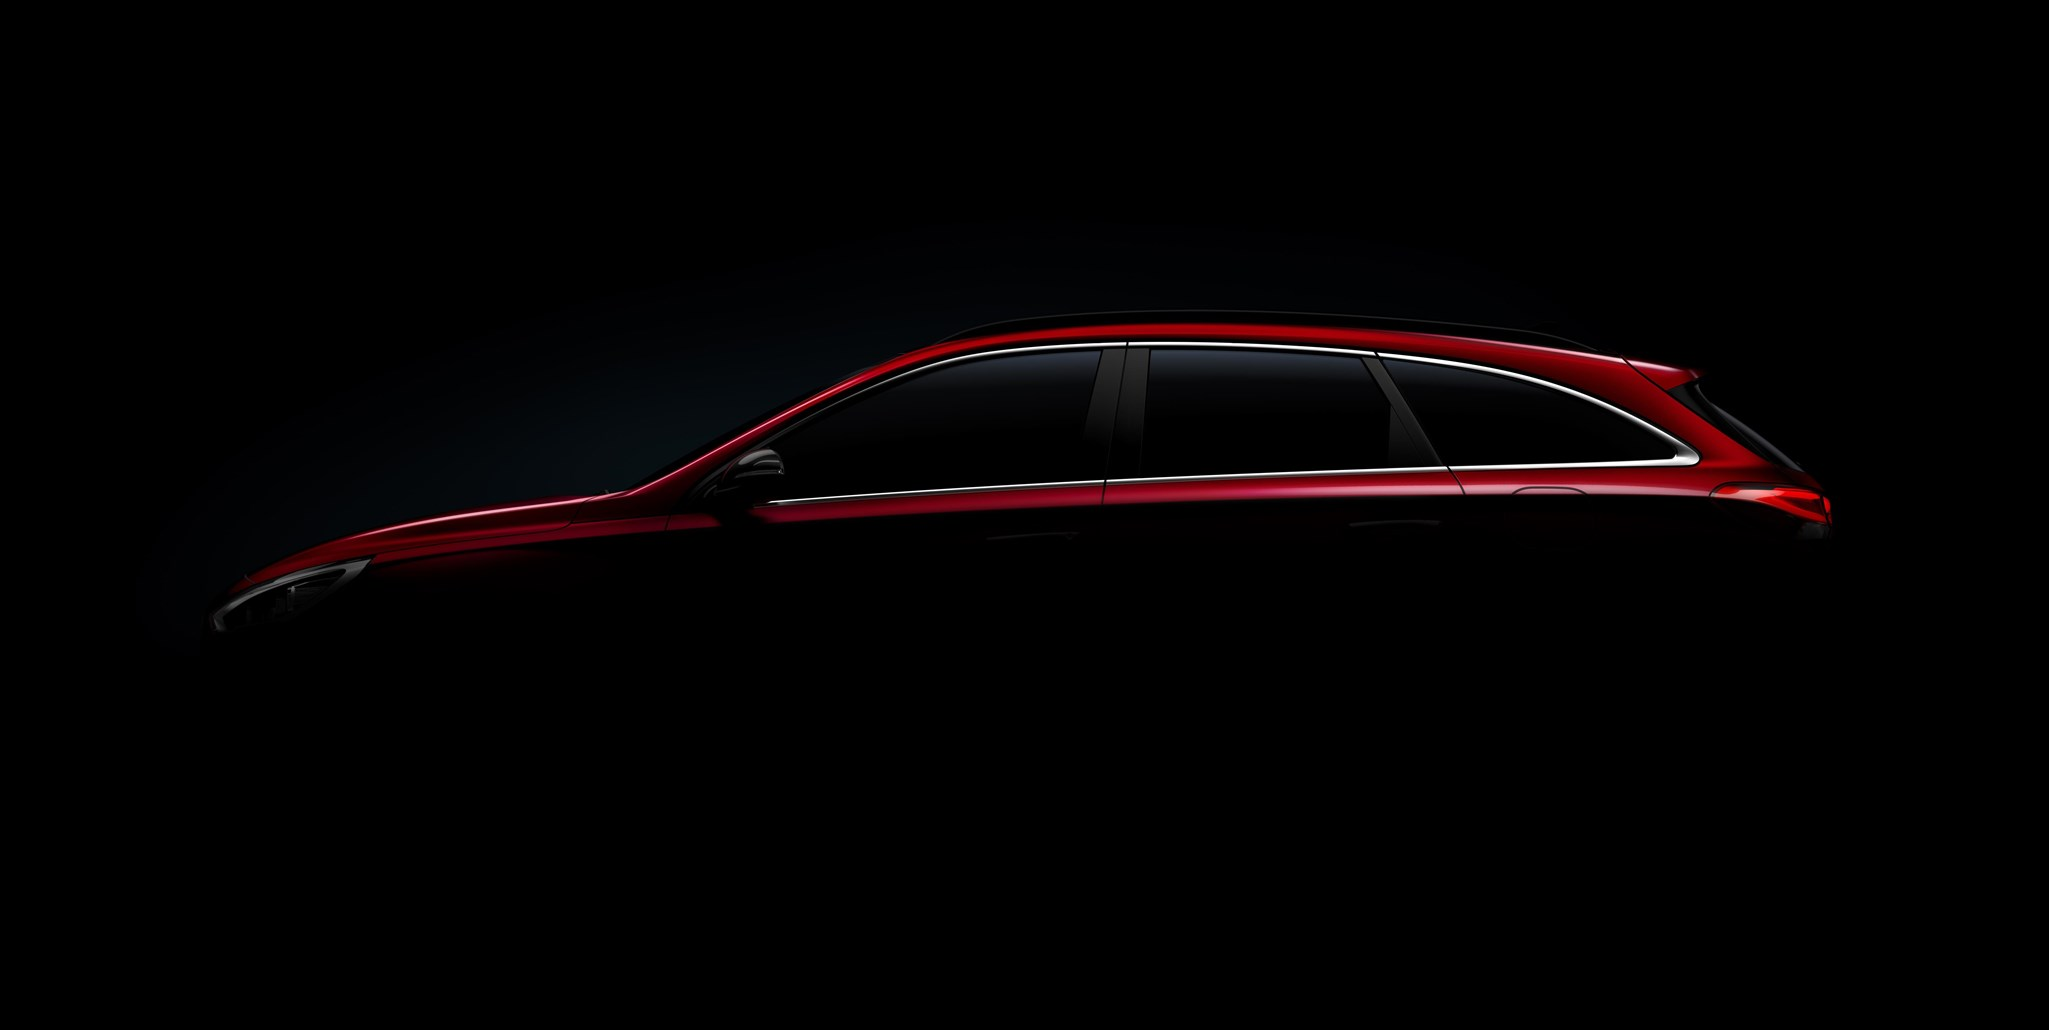 Concept car magazine cool car wallpapers - Hyundai I30 Wagon A Shadowy Teaser